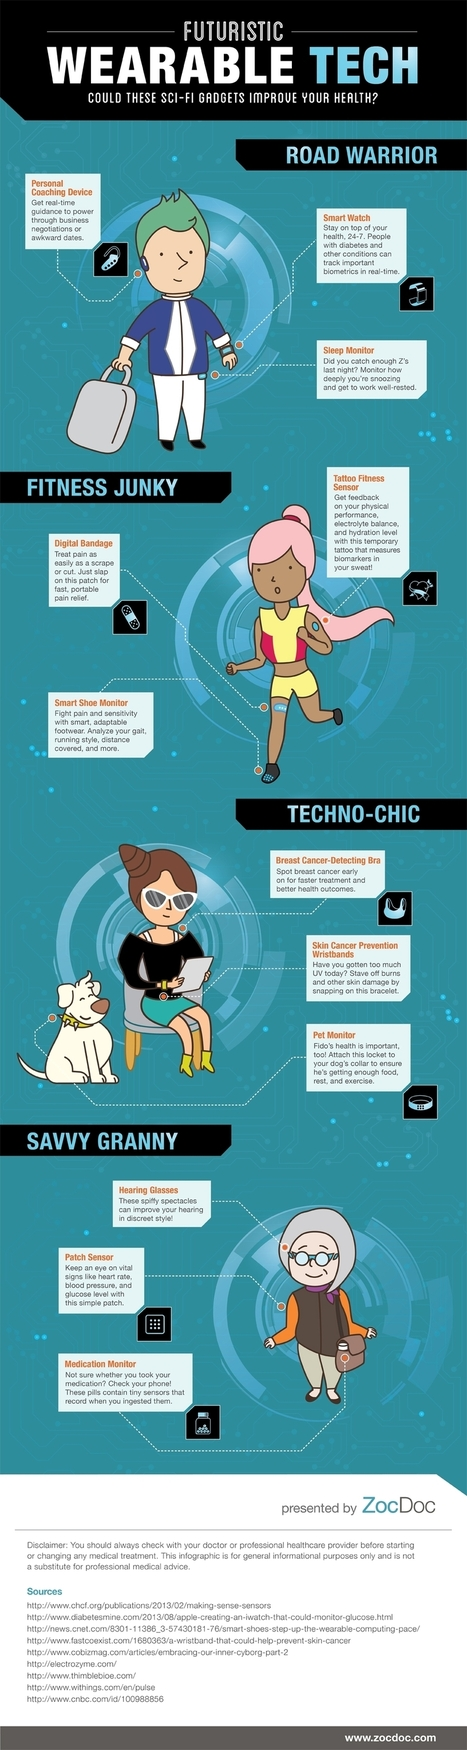 Wearable Technology and the Future of Healthcare Infographic | Healthcare infographics | Scoop.it